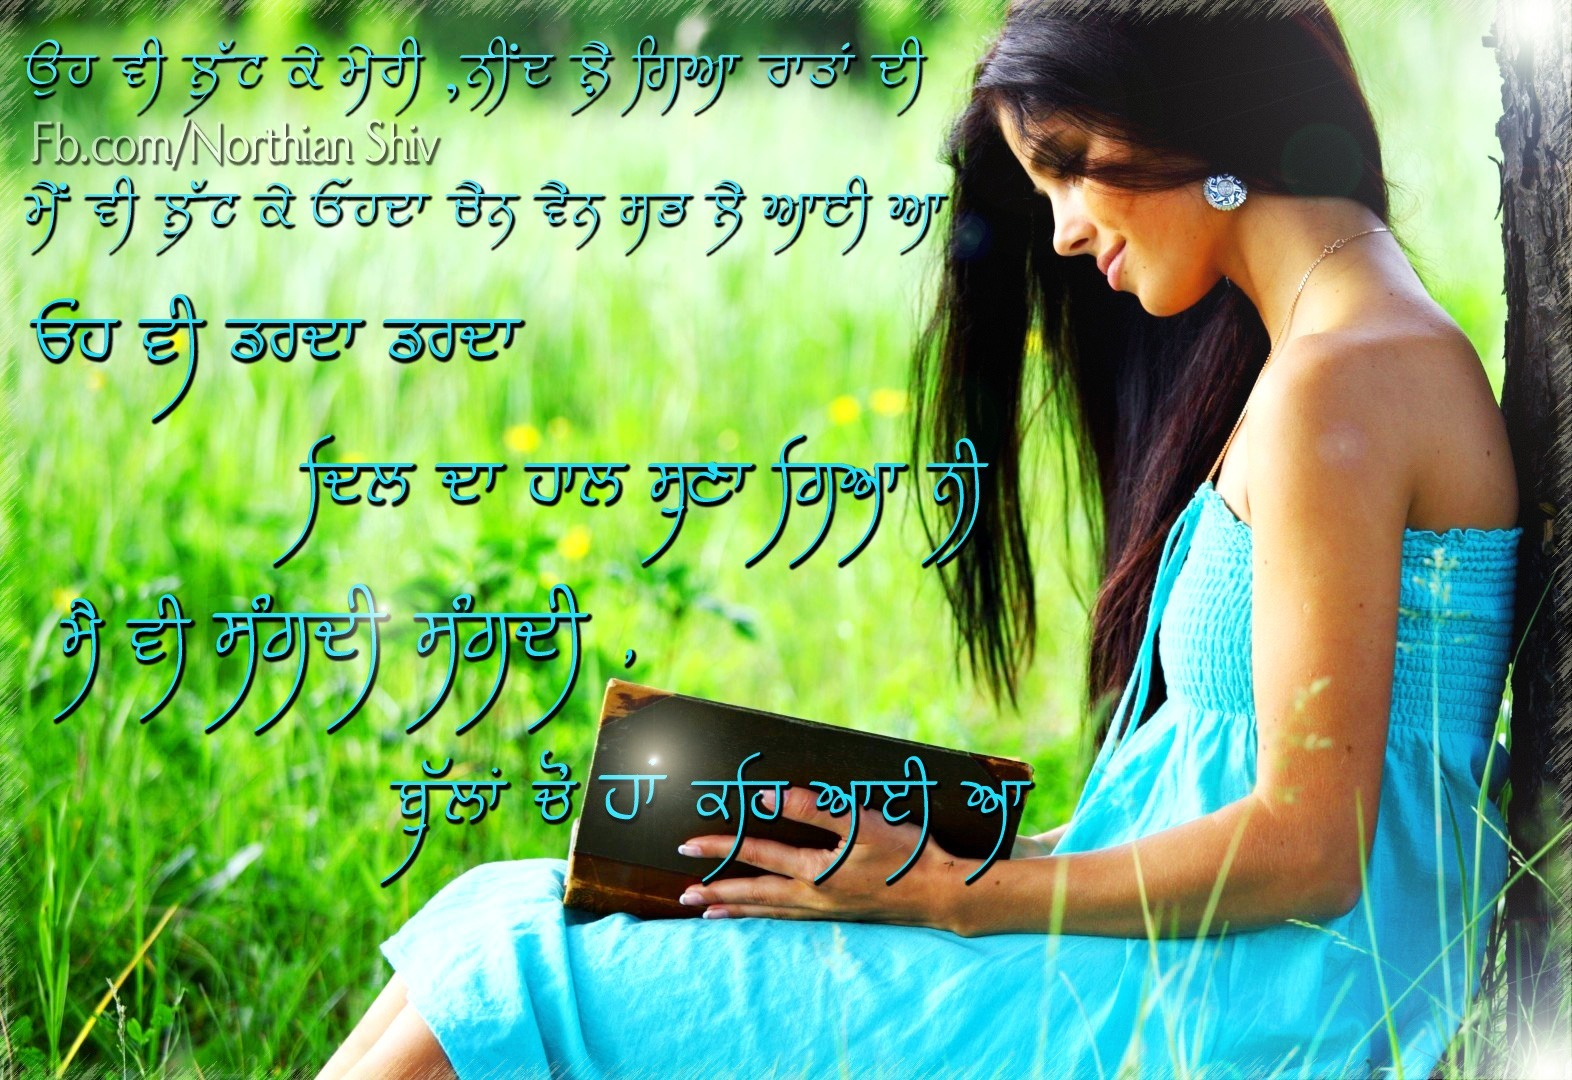 Desi comment Love Wallpaper : Punjabi Love Pictures, Images, Graphics for Facebook, Whatsapp - Page 34